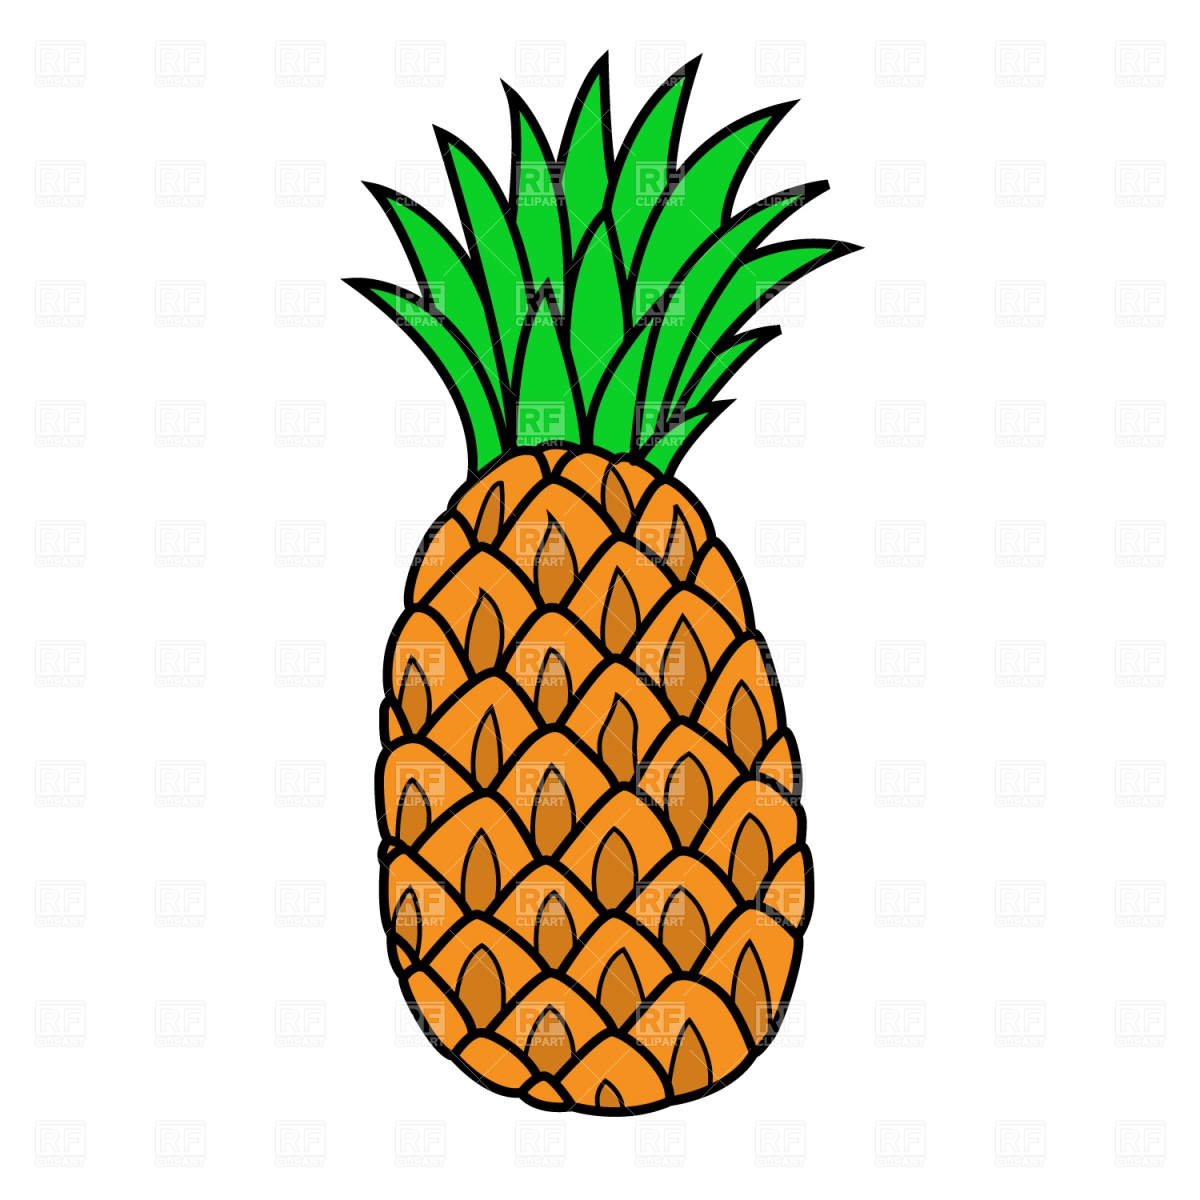 clip art free download Free cliparts download clip. Pineapple clipart